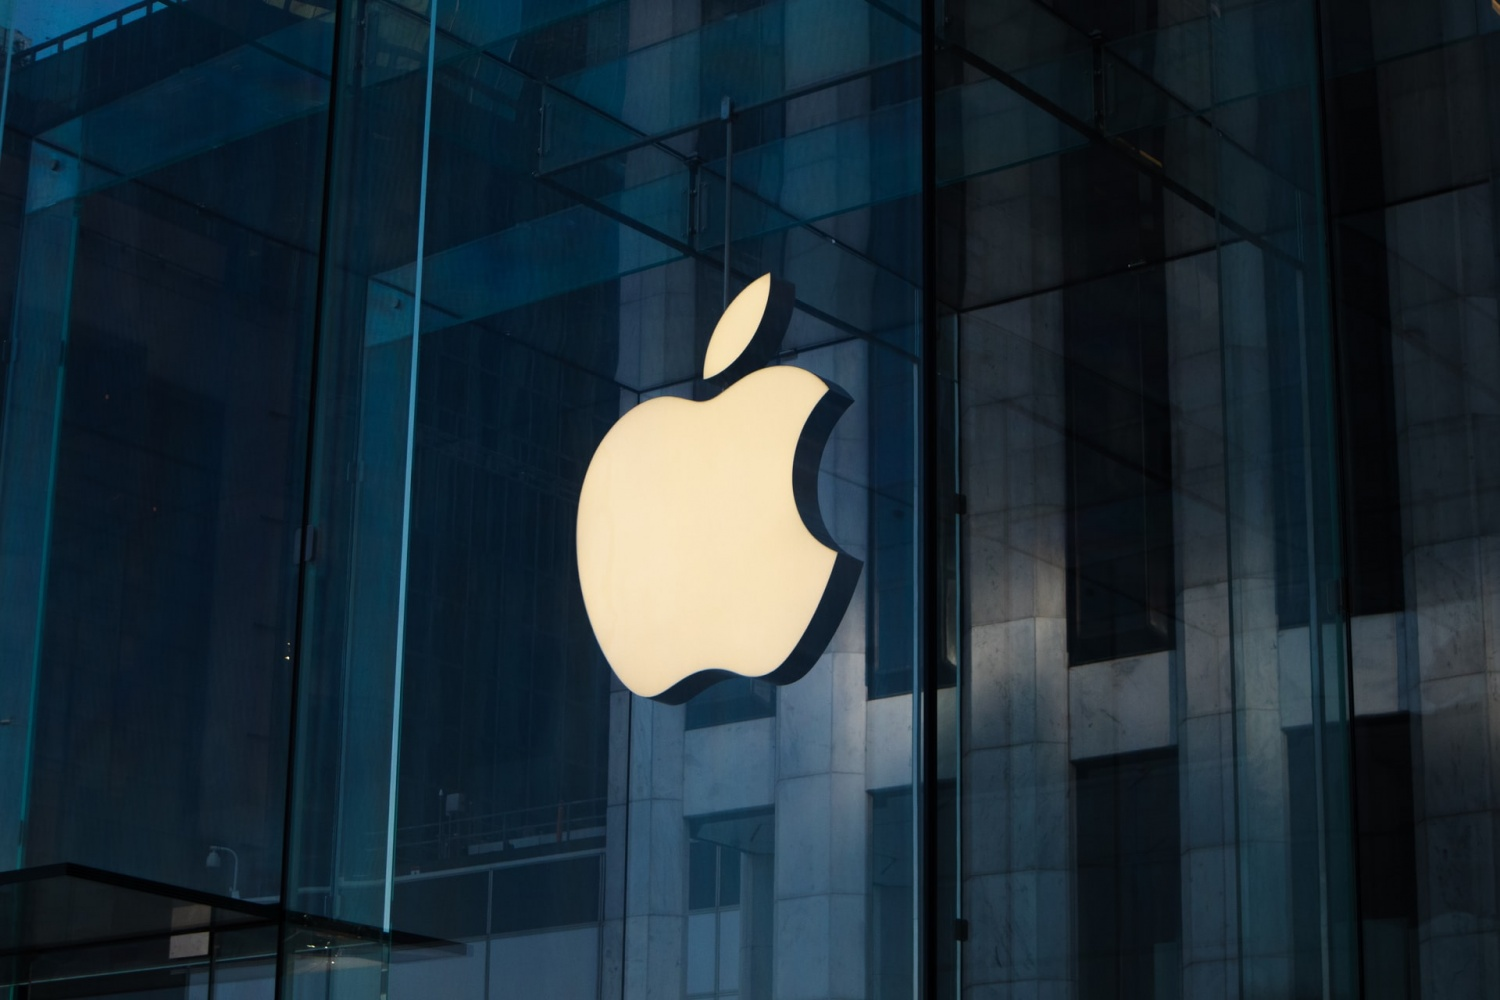 Apple Games Makes 69% of App Store's $15.9B Profit   Earns More than Microsoft, Activision Blizzard, Sony, and Nintendo Combined